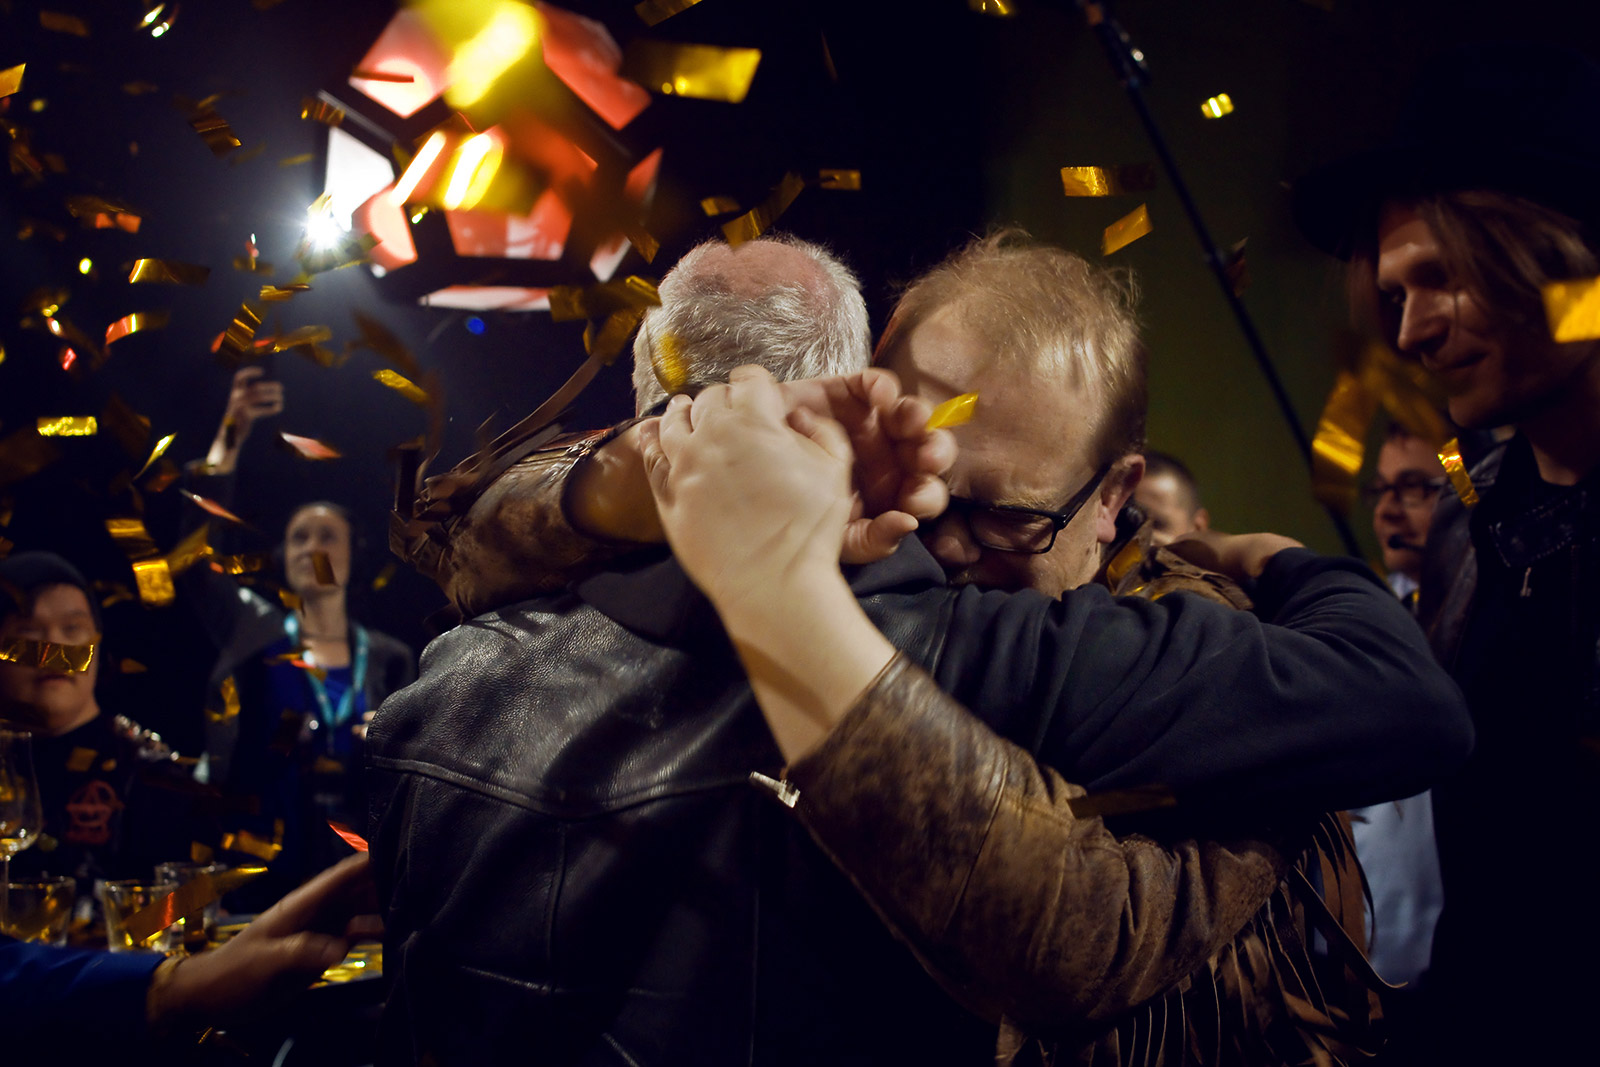 Sami Helle, the bass player from PKN, hugging his bandmate, the vocalist Kari Aalto, at the YLE studios on Saturday February 28 2015, after the band was announced as the Finnish representative for the Eurovision 2015 song contest. Picture: Romina Danell for Finland Today